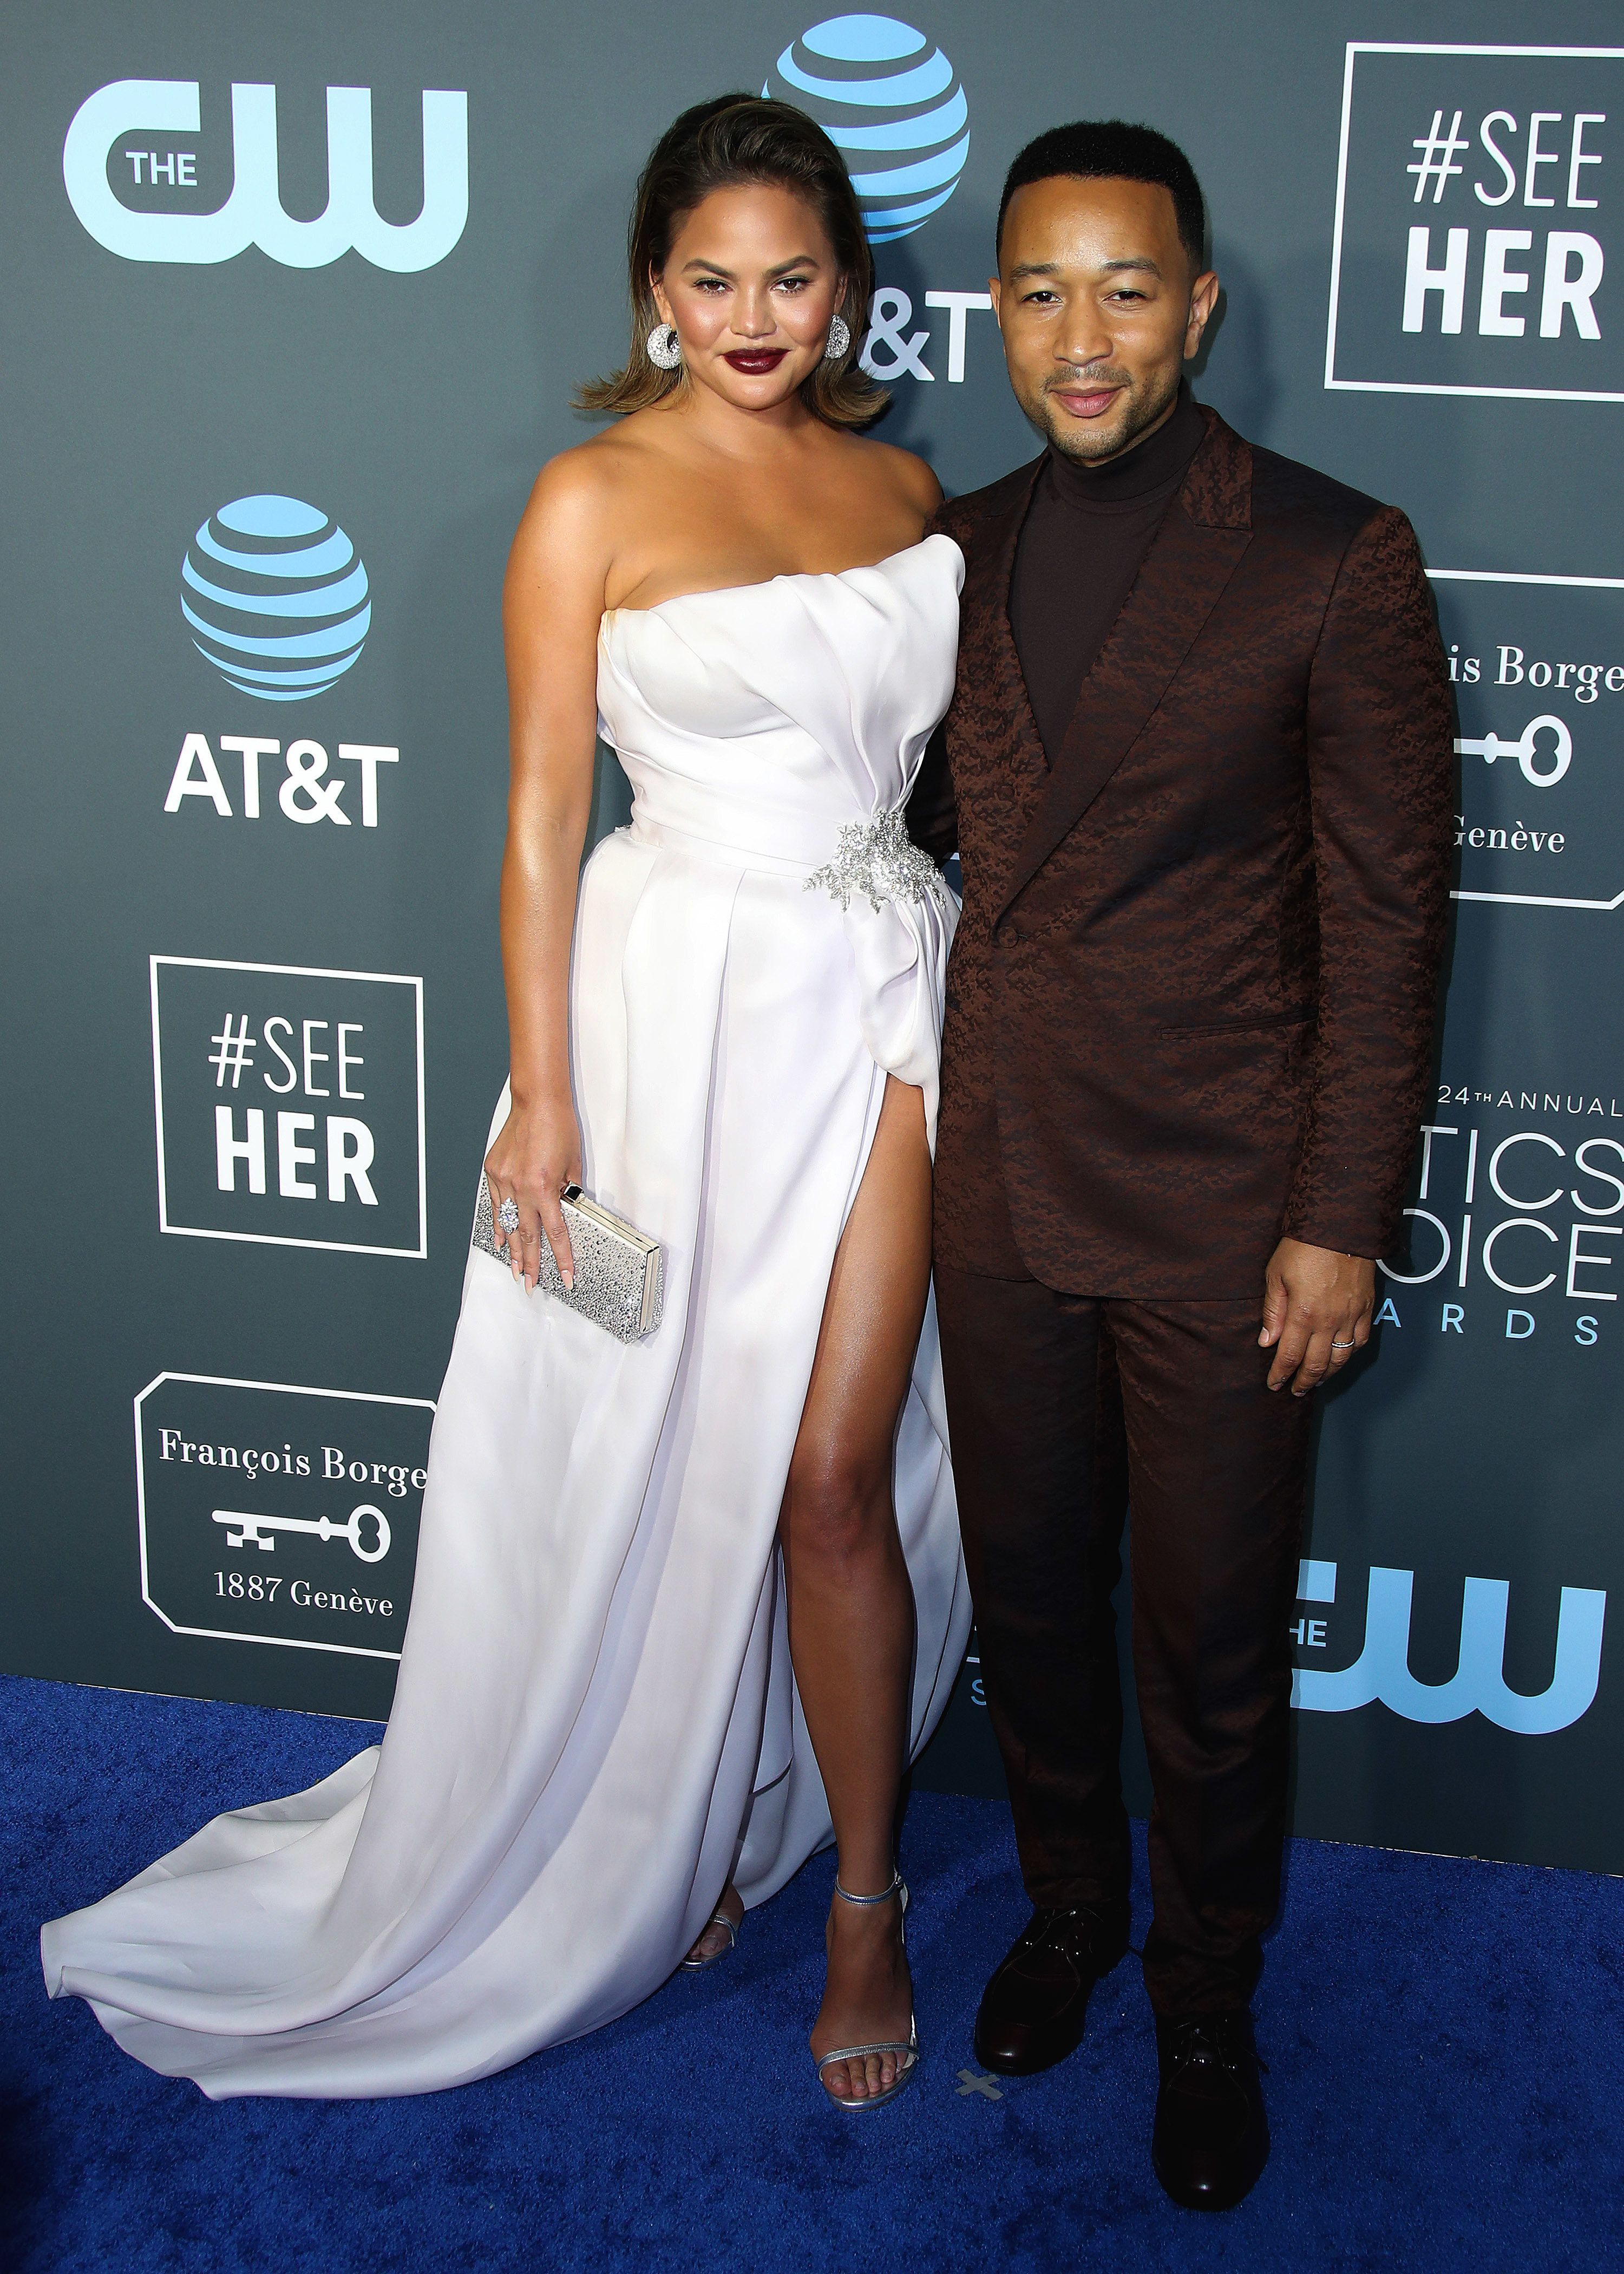 SANTA MONICA - JANUARY 13: Chrissy Teigen and John Legend at the 24th Annual Critics' Choice Awards at the Barker Hangar on January 13, 2019, in Santa Monica, California. (Photo by Xavier Collin/PictureGroup/Sipa USA)